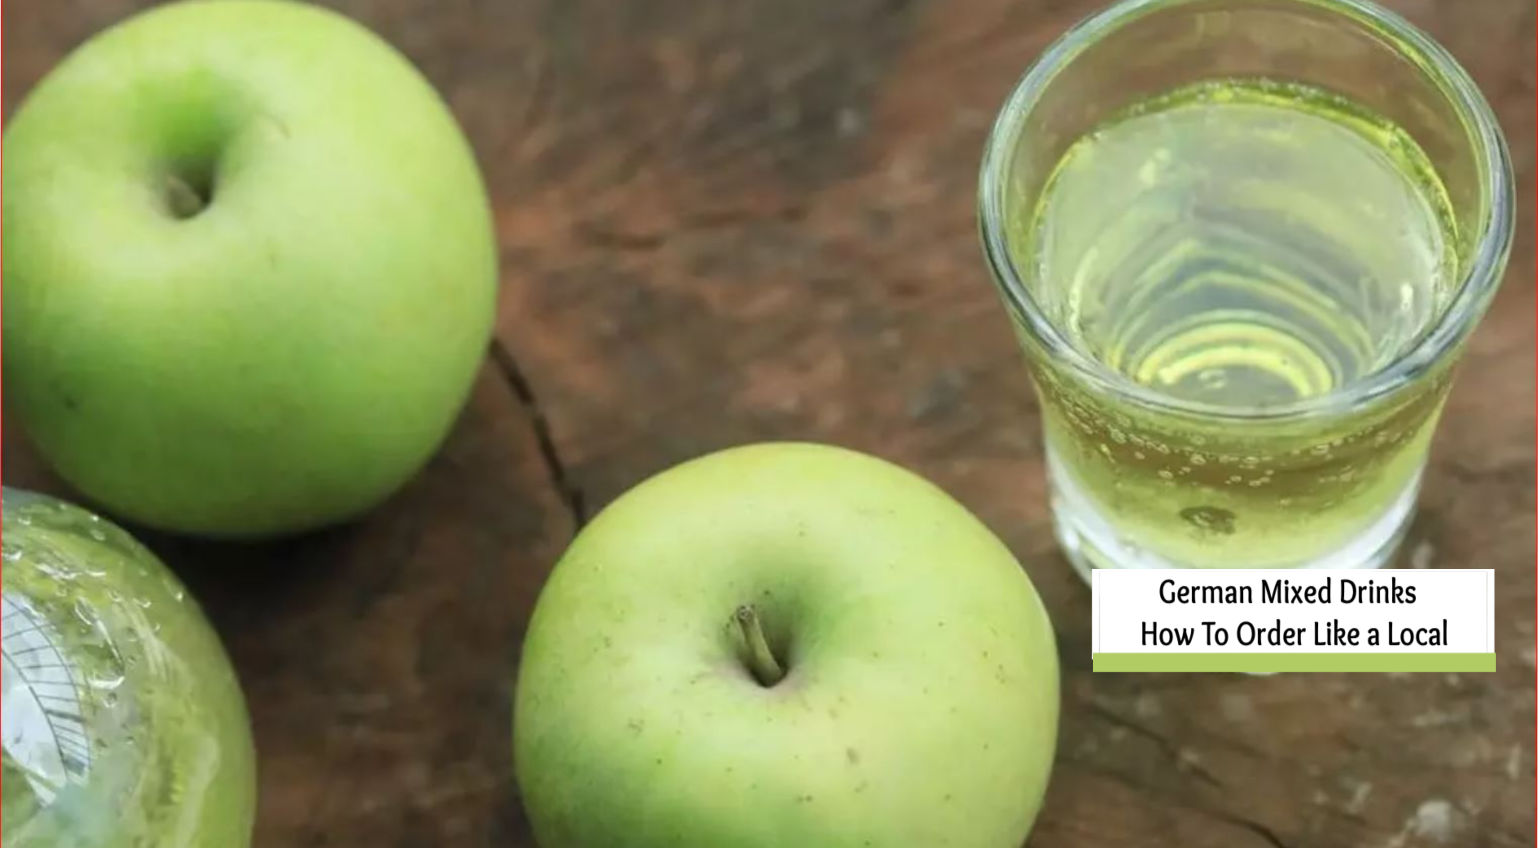 German Drink Recipes For German Mixed Drinks- Order like a Local!